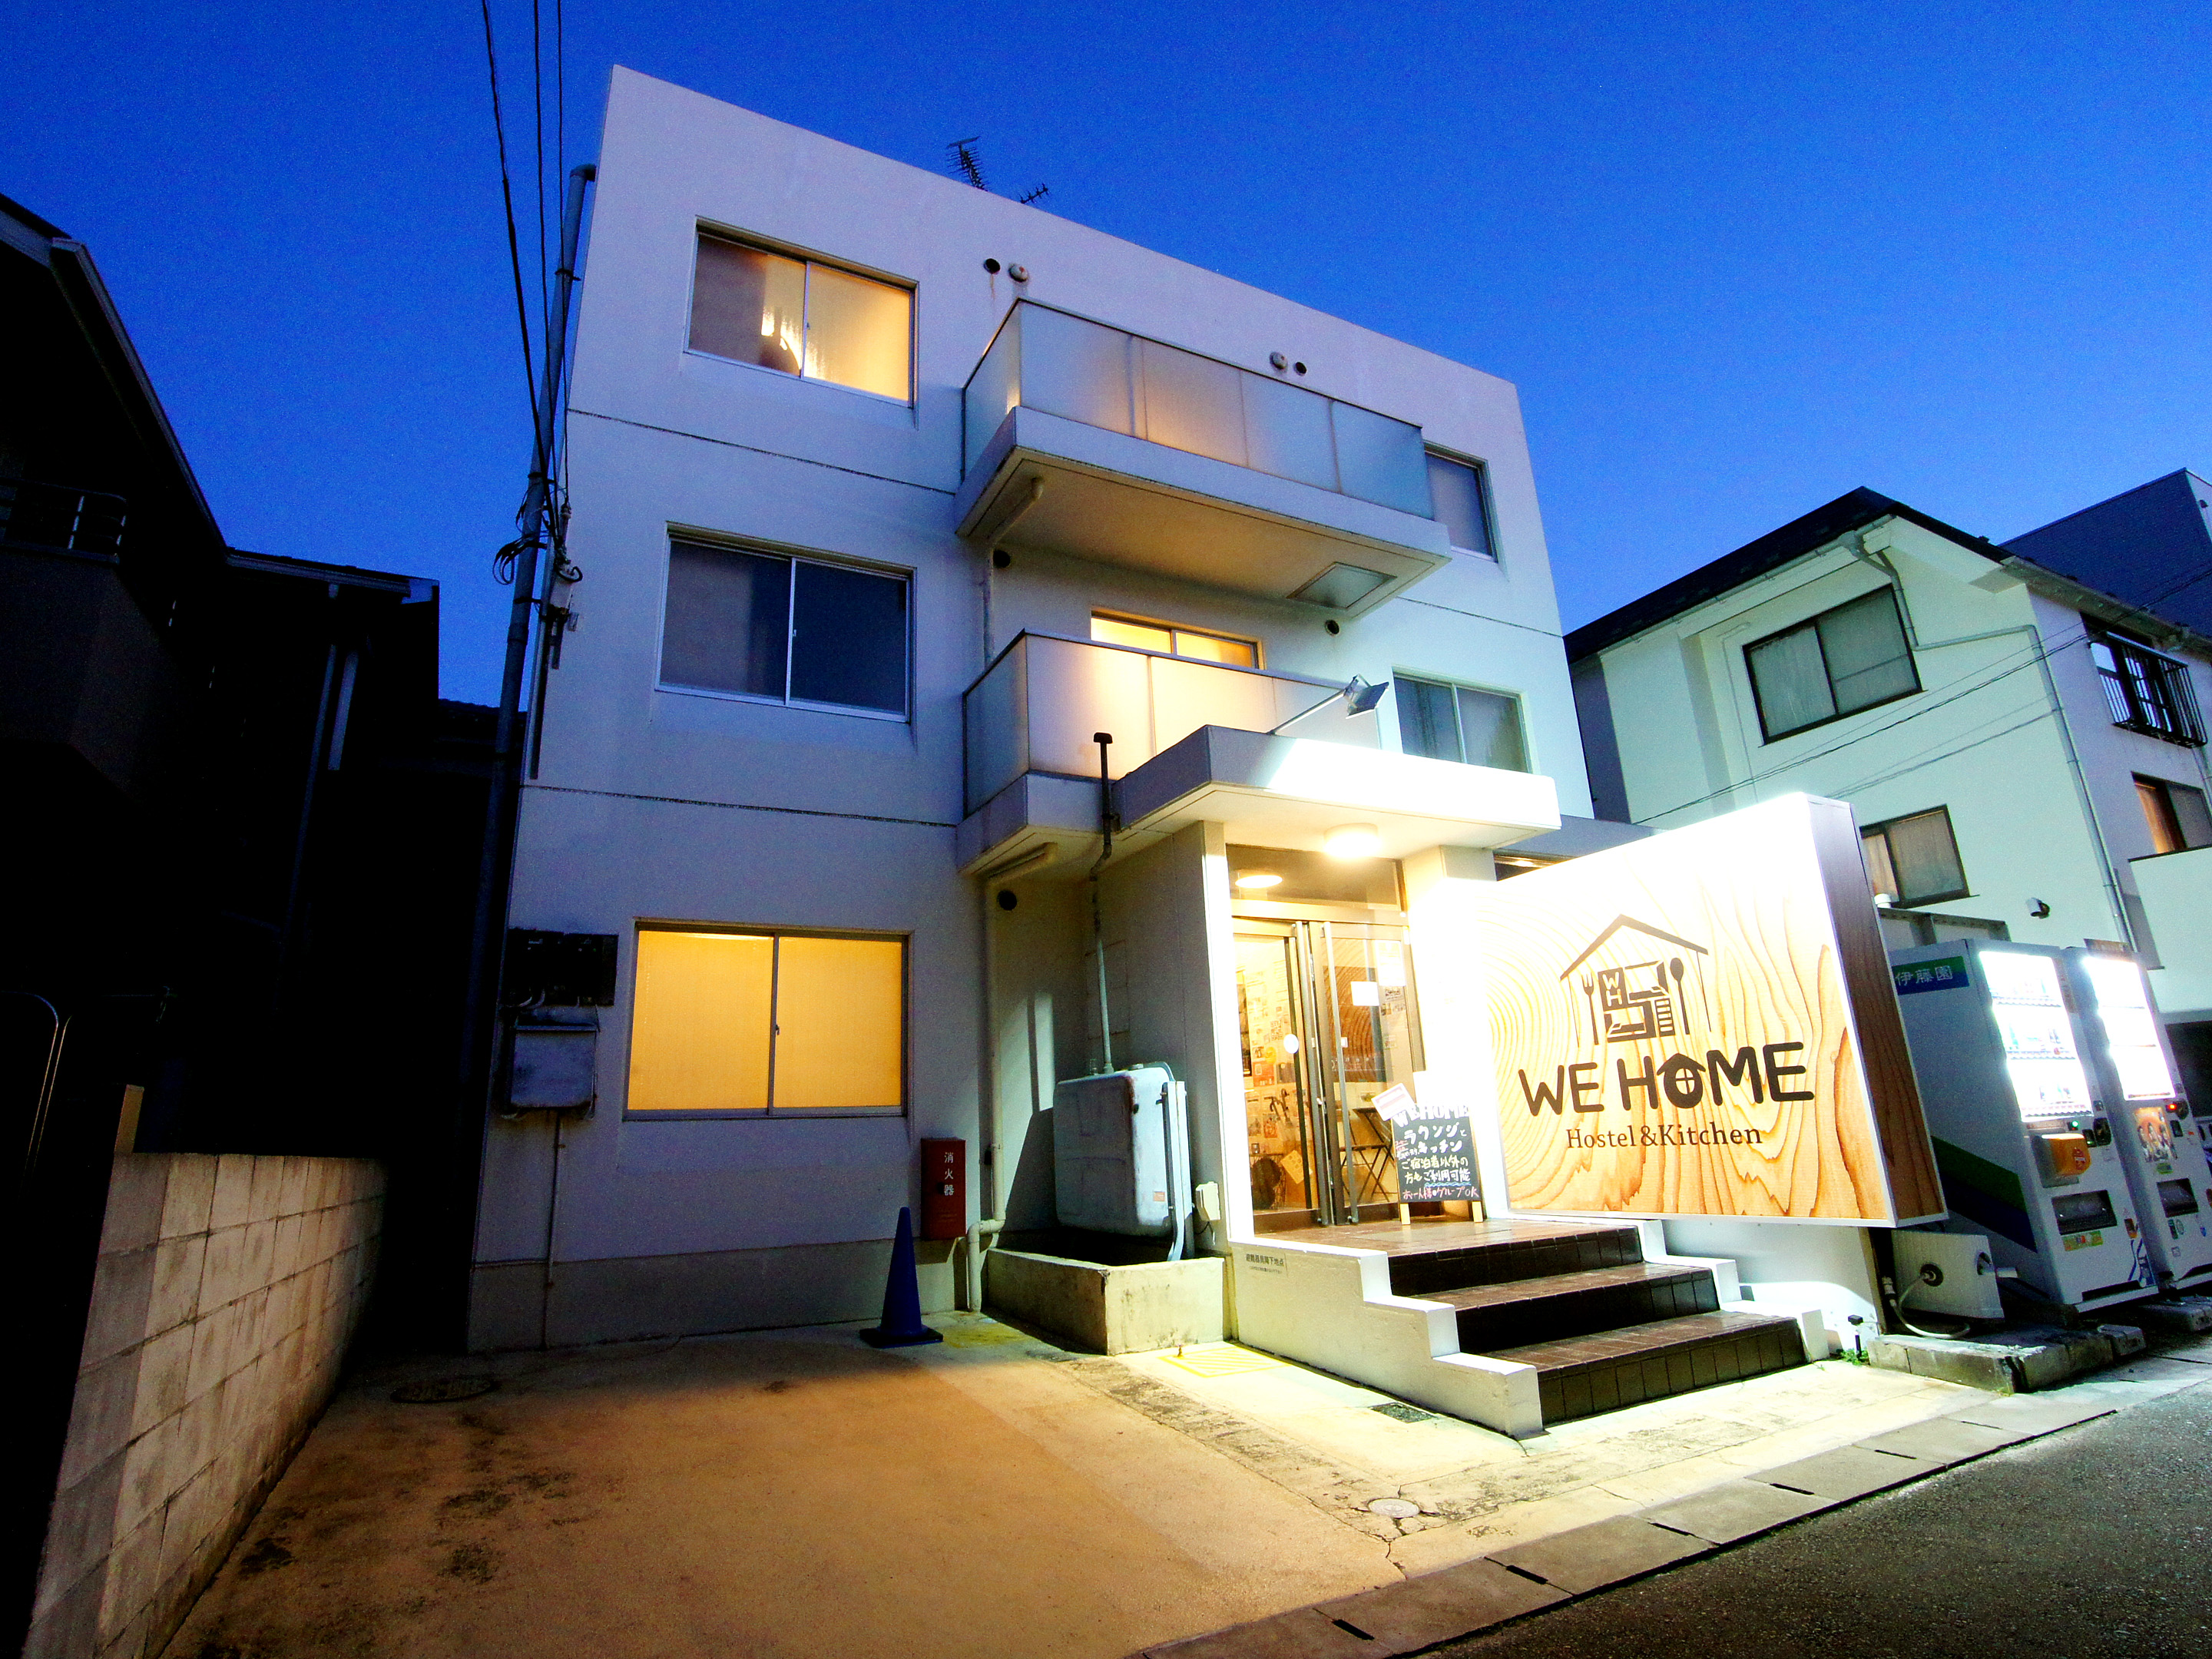 We Home Hostel&kitchen(ホステル&キッ...